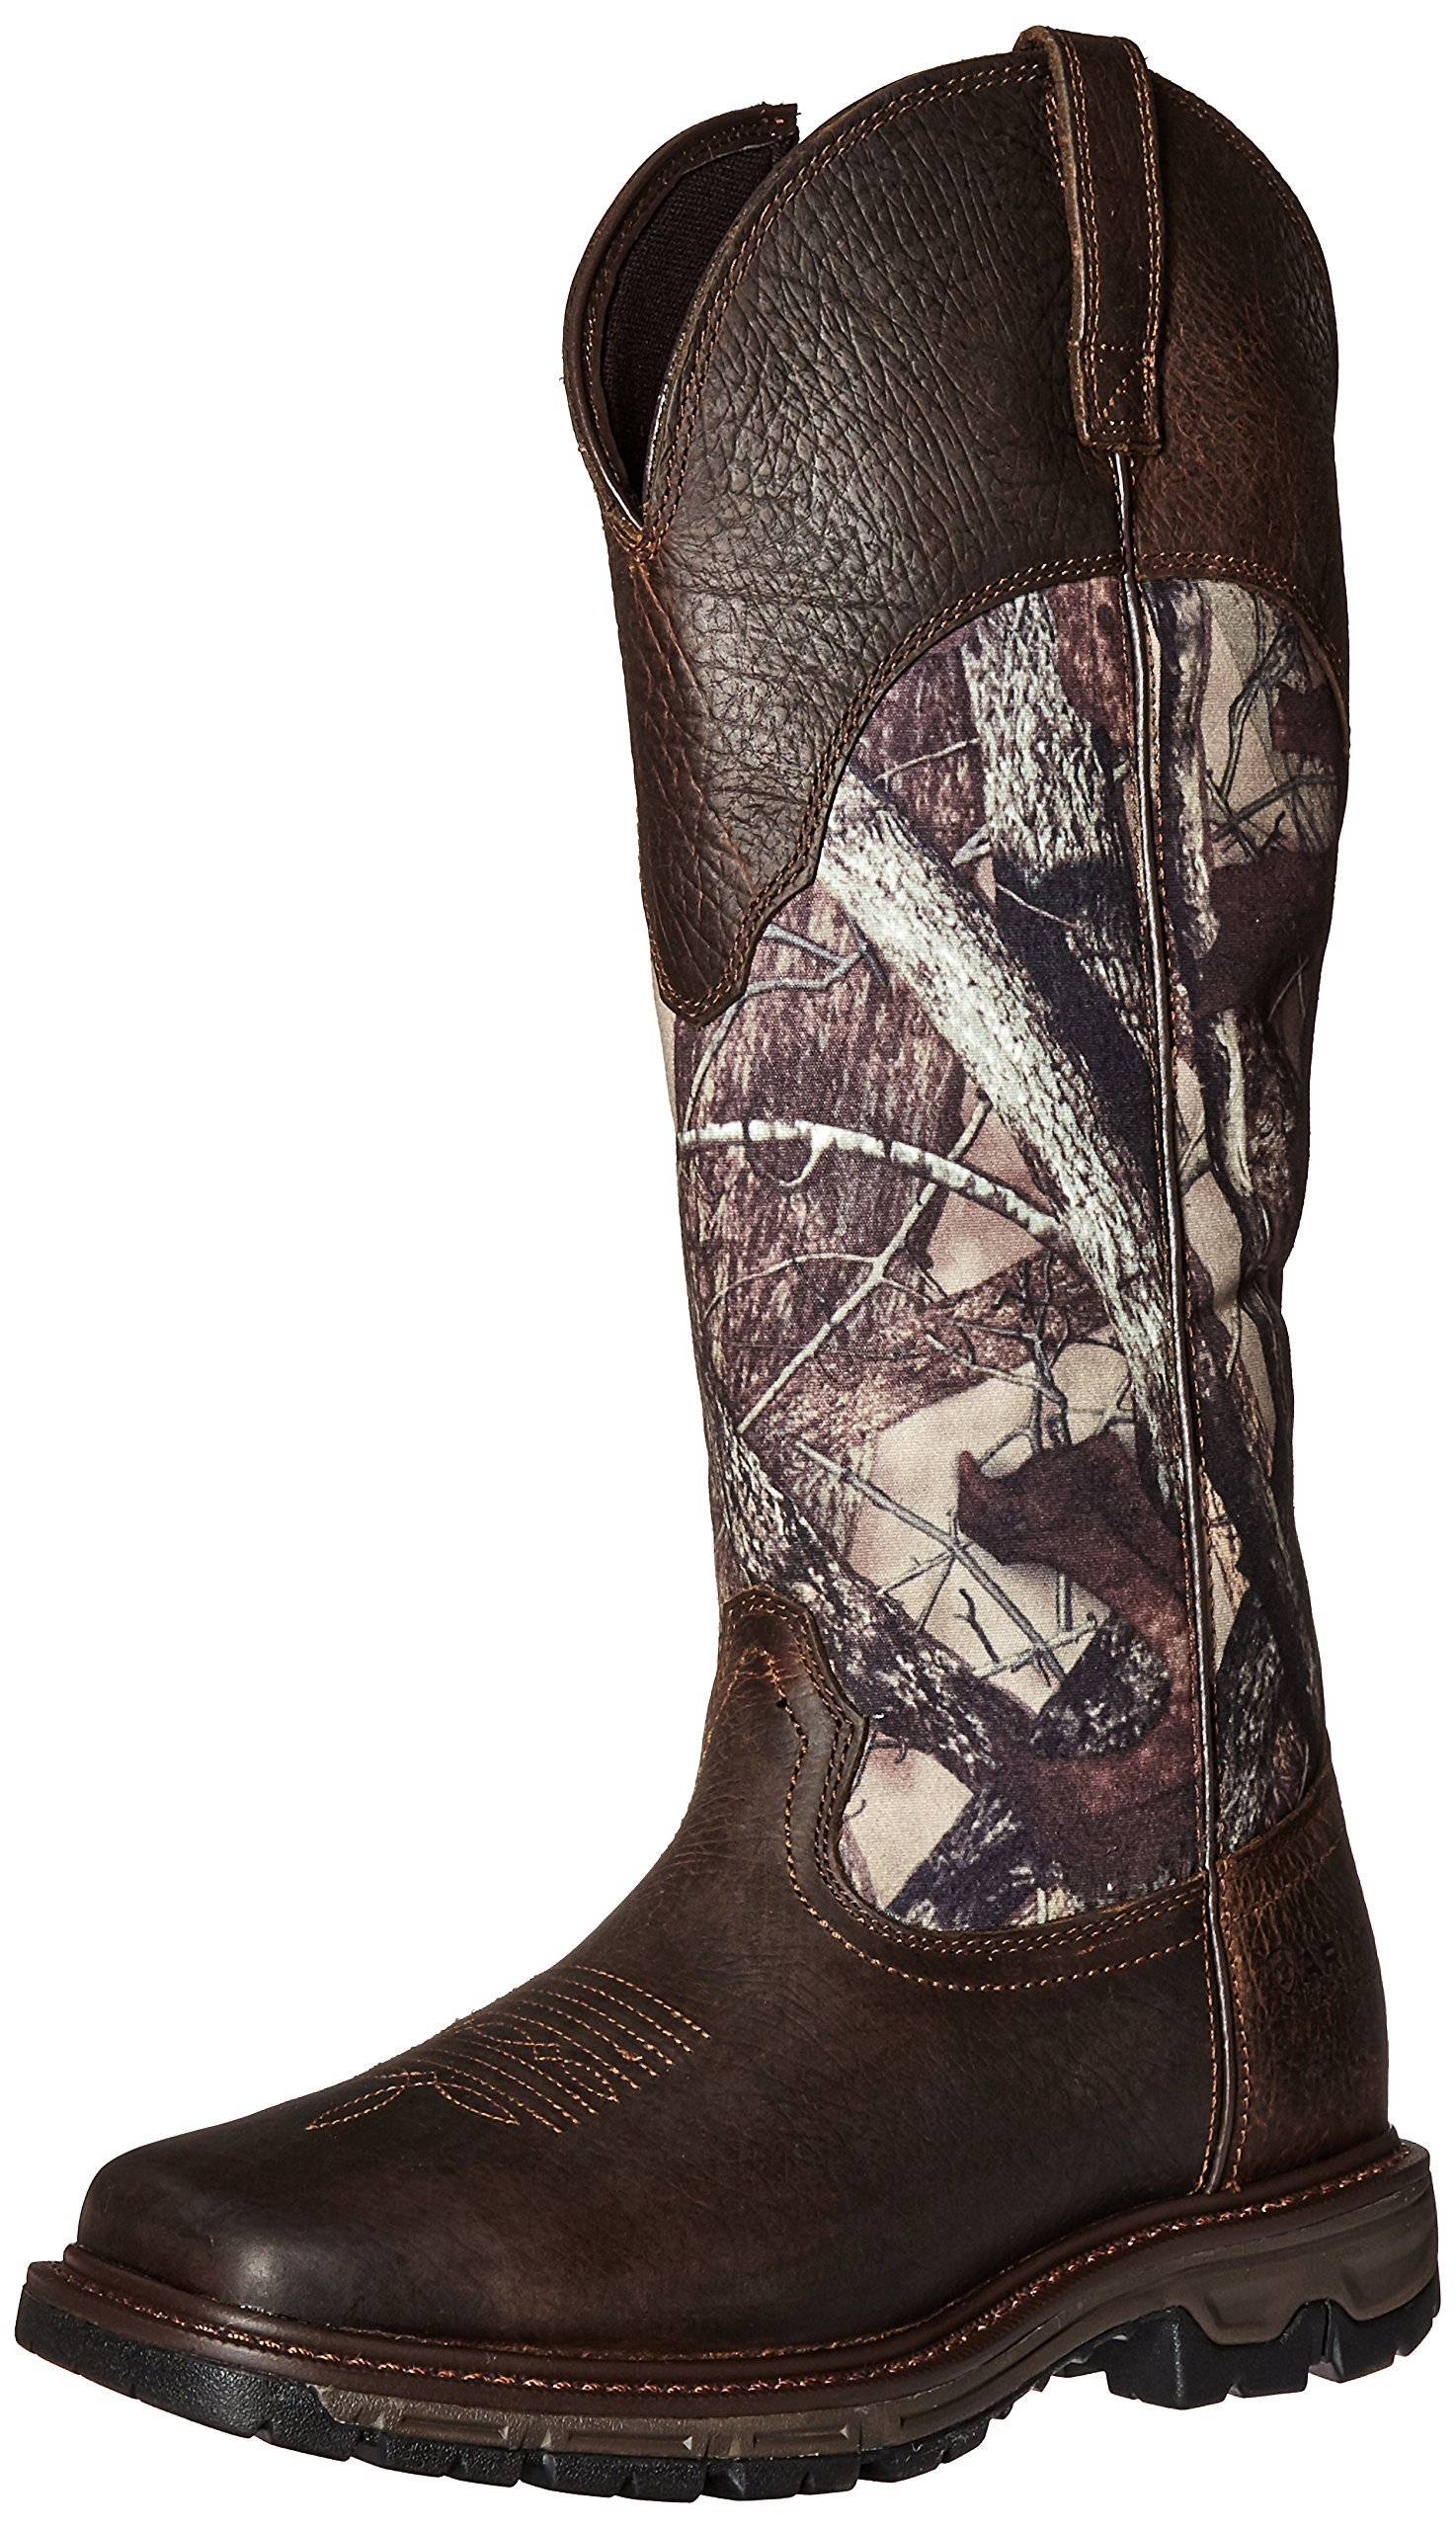 Ariat Men's Conquest Snakeboot H2O Hunting Boot, Real Tree Extra, 13 D US